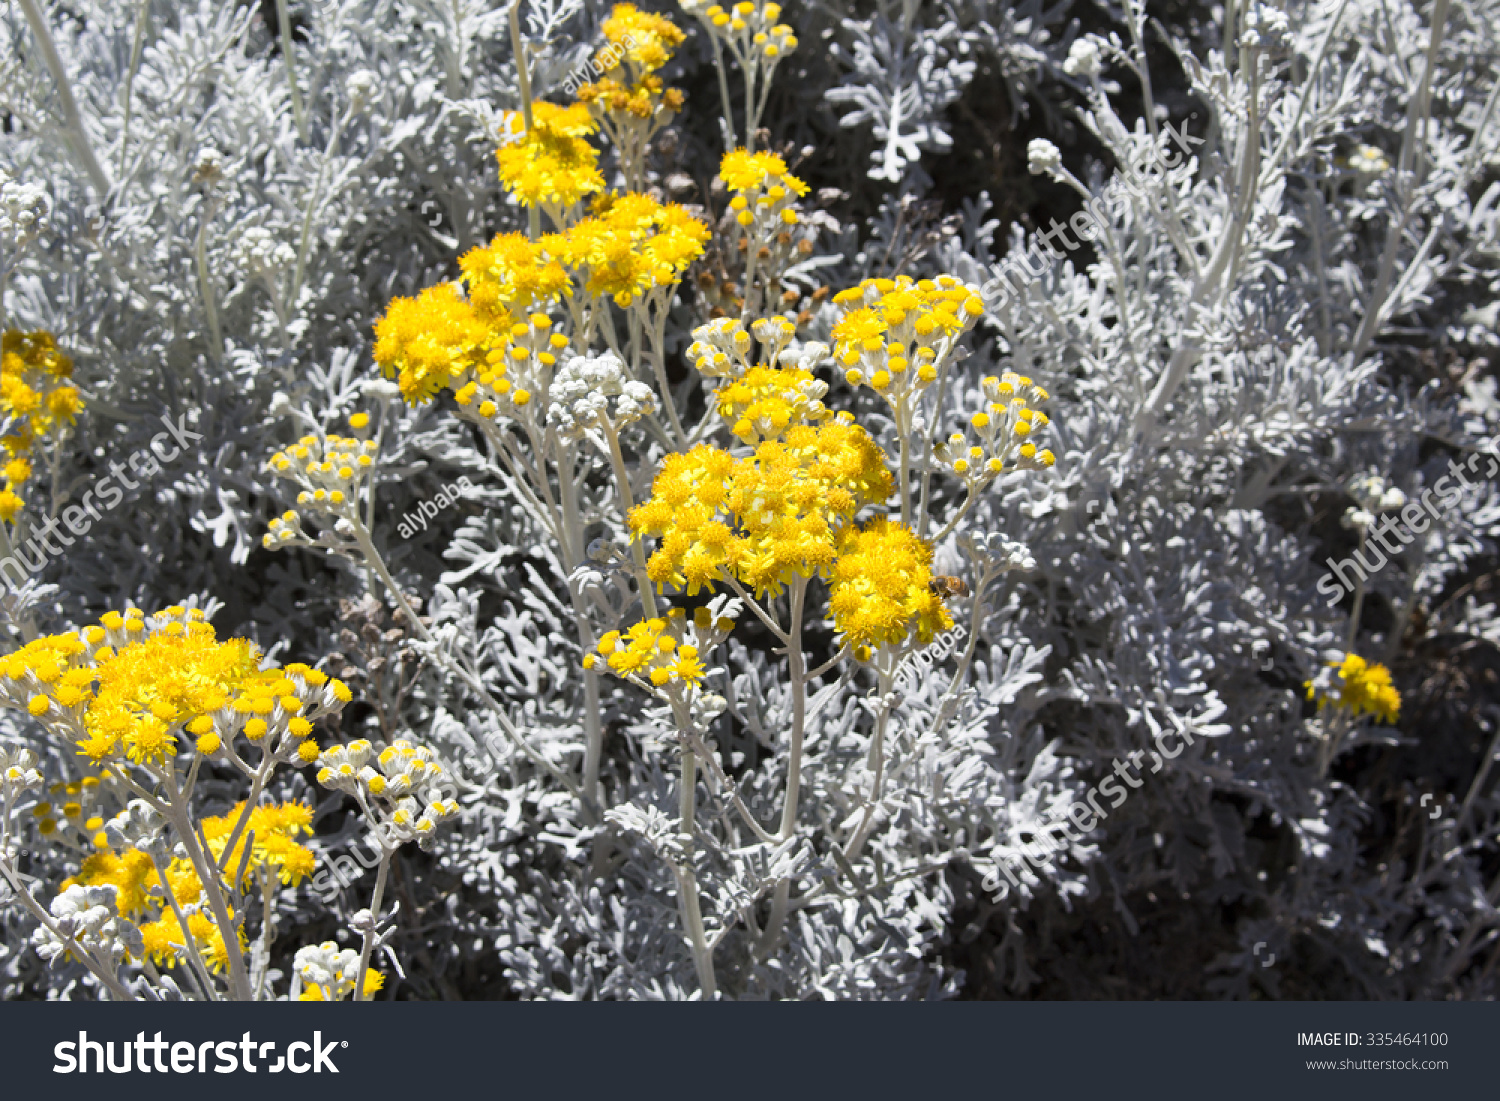 Bee on bright yellow flowers hardy stock photo edit now 335464100 bee on bright yellow flowers of hardy coastal plant senecio cineraria silver dust izmirmasajfo